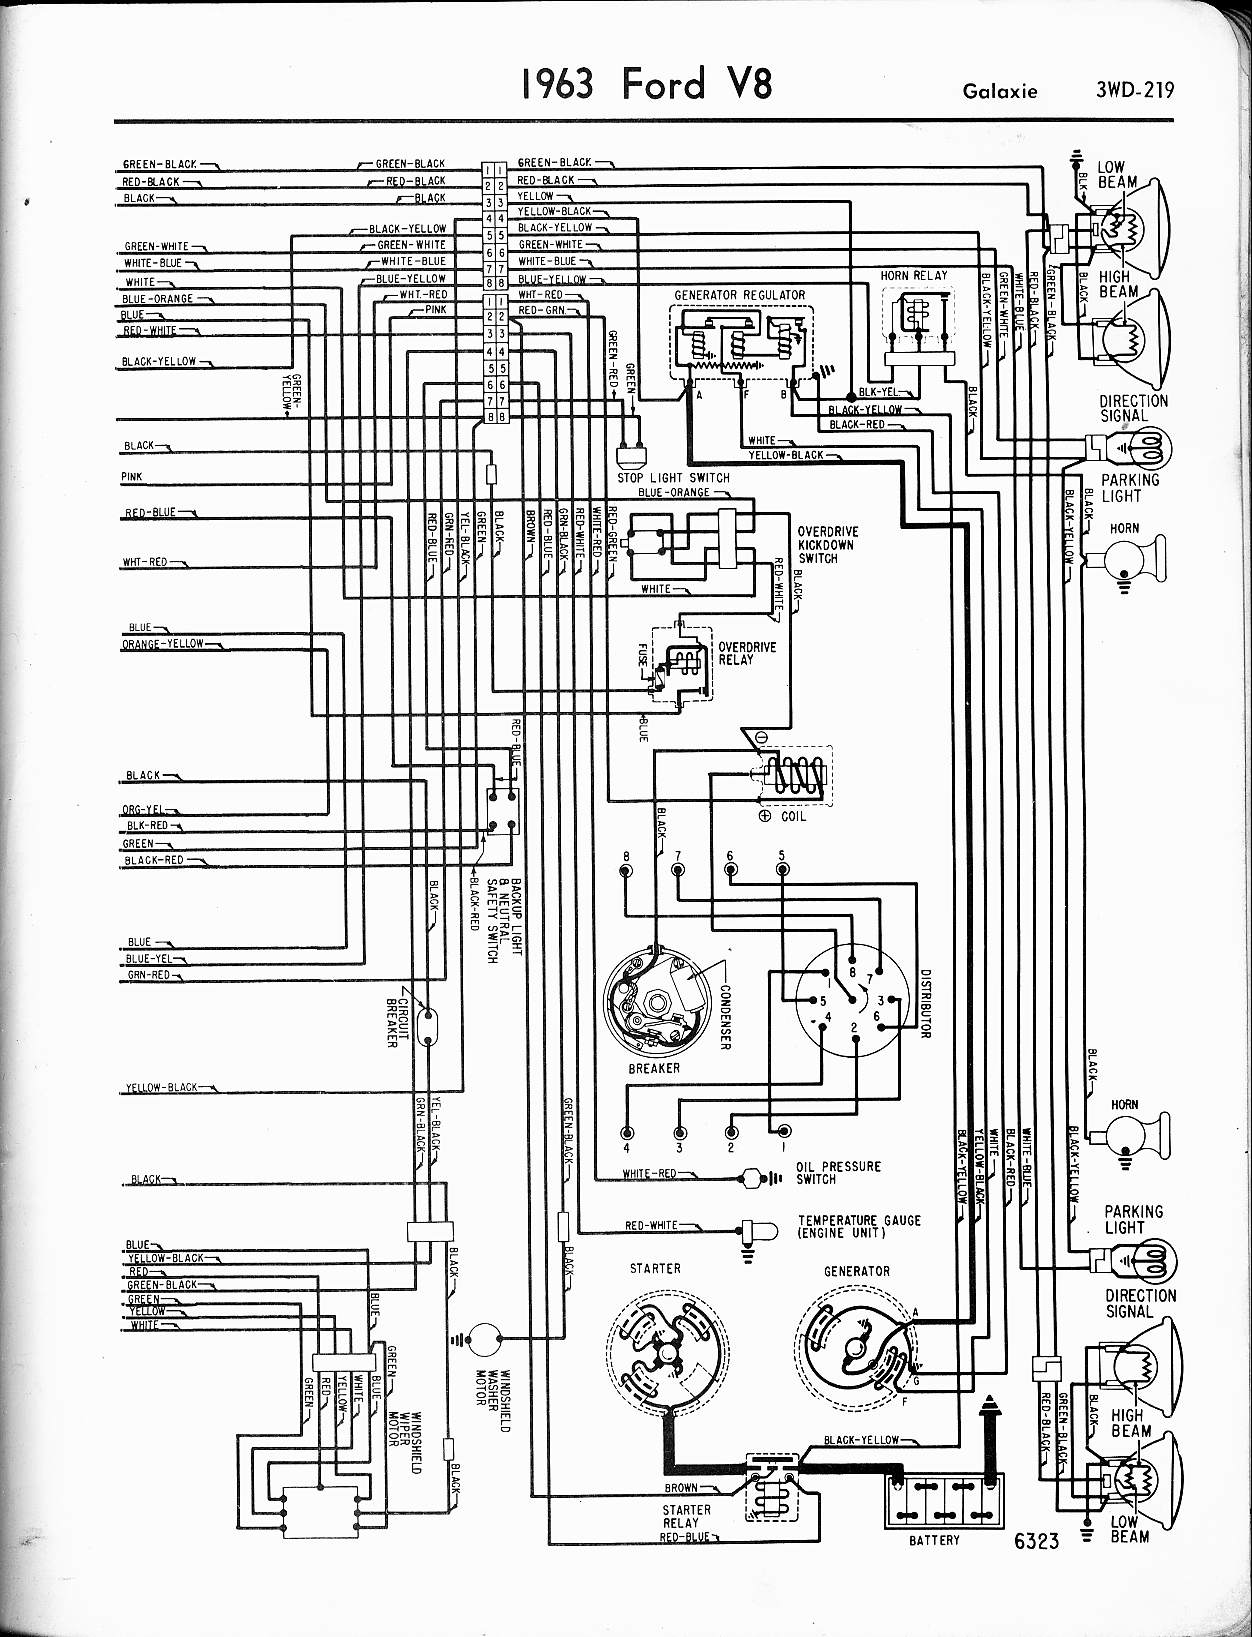 63 Galaxie Wiring Diagram Explore On The Net Fairlane